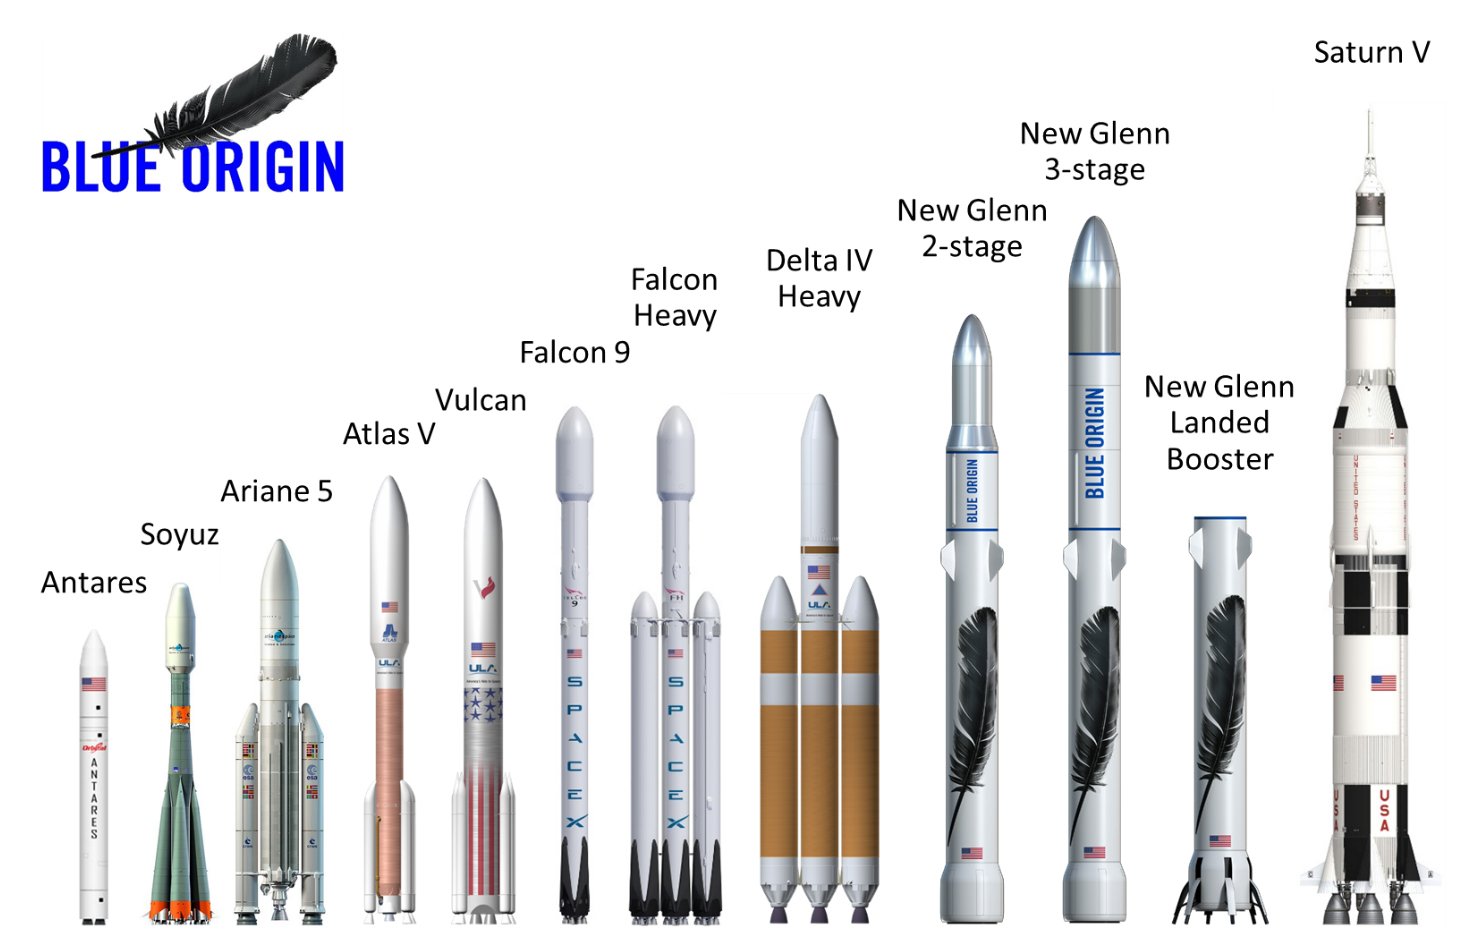 Blue Origin animation depicts reusable New Glenn rocket